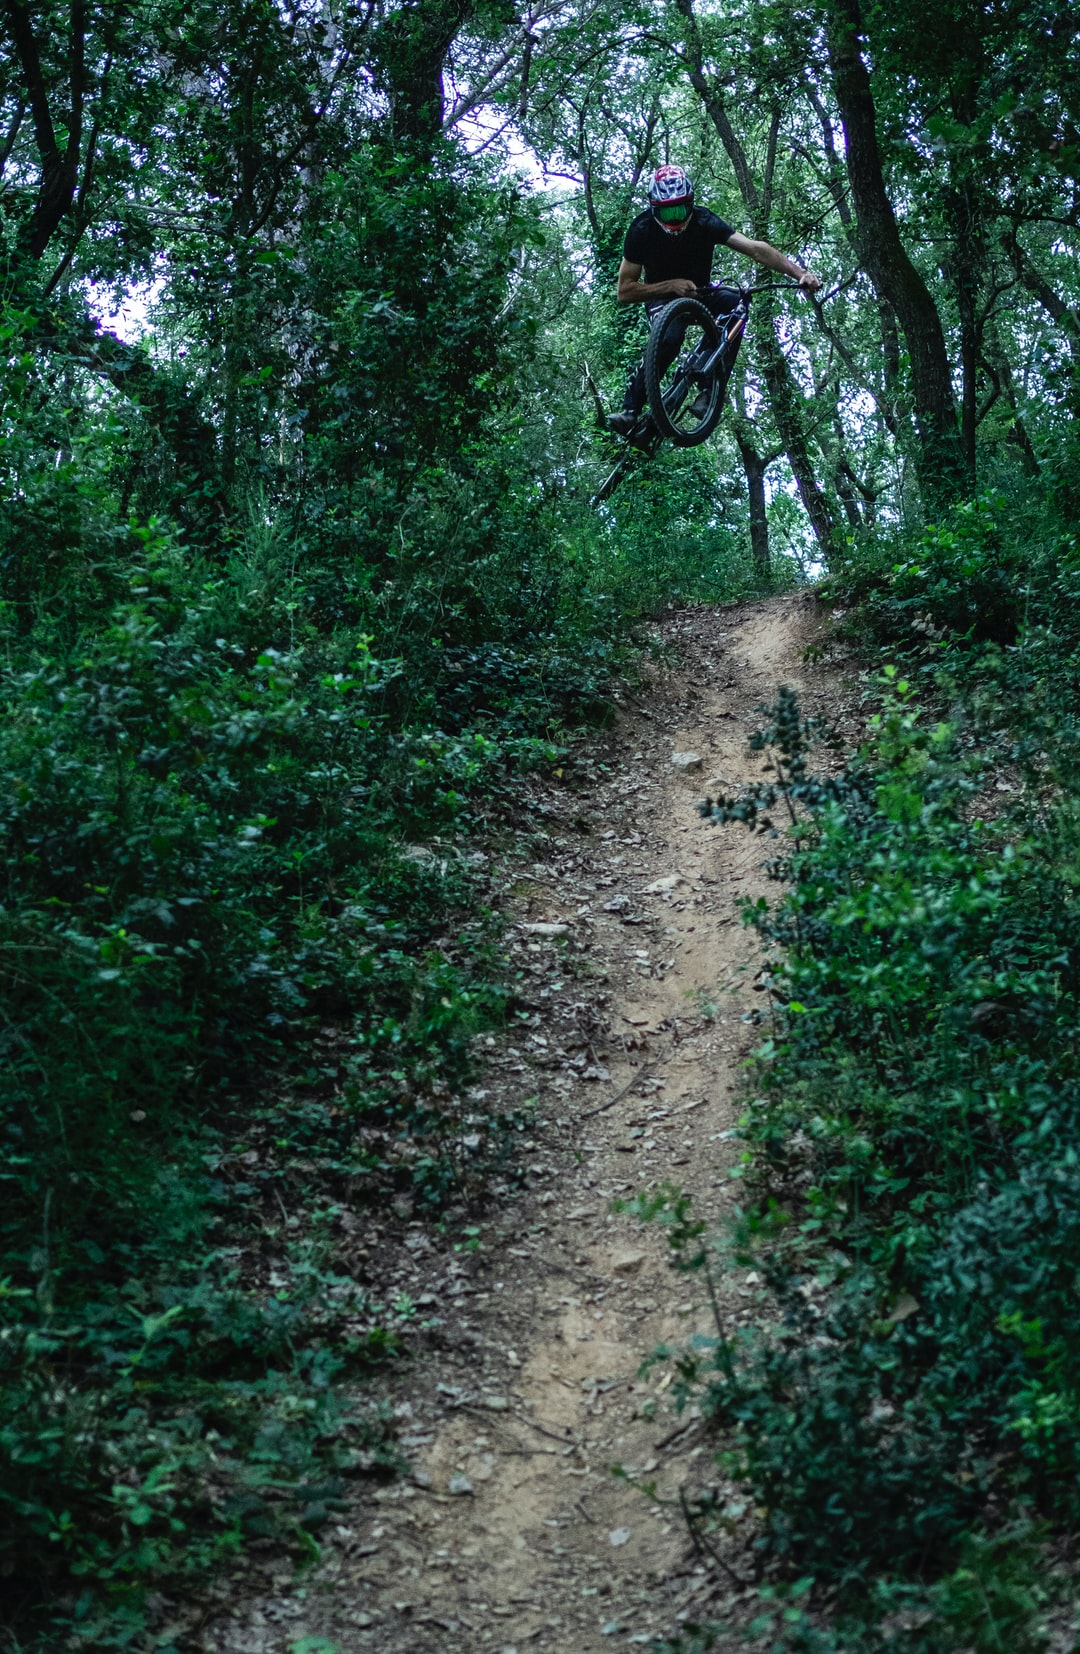 Freeride Downhill Bike Session. My friend making a big jump inside a forest, crazy ;).